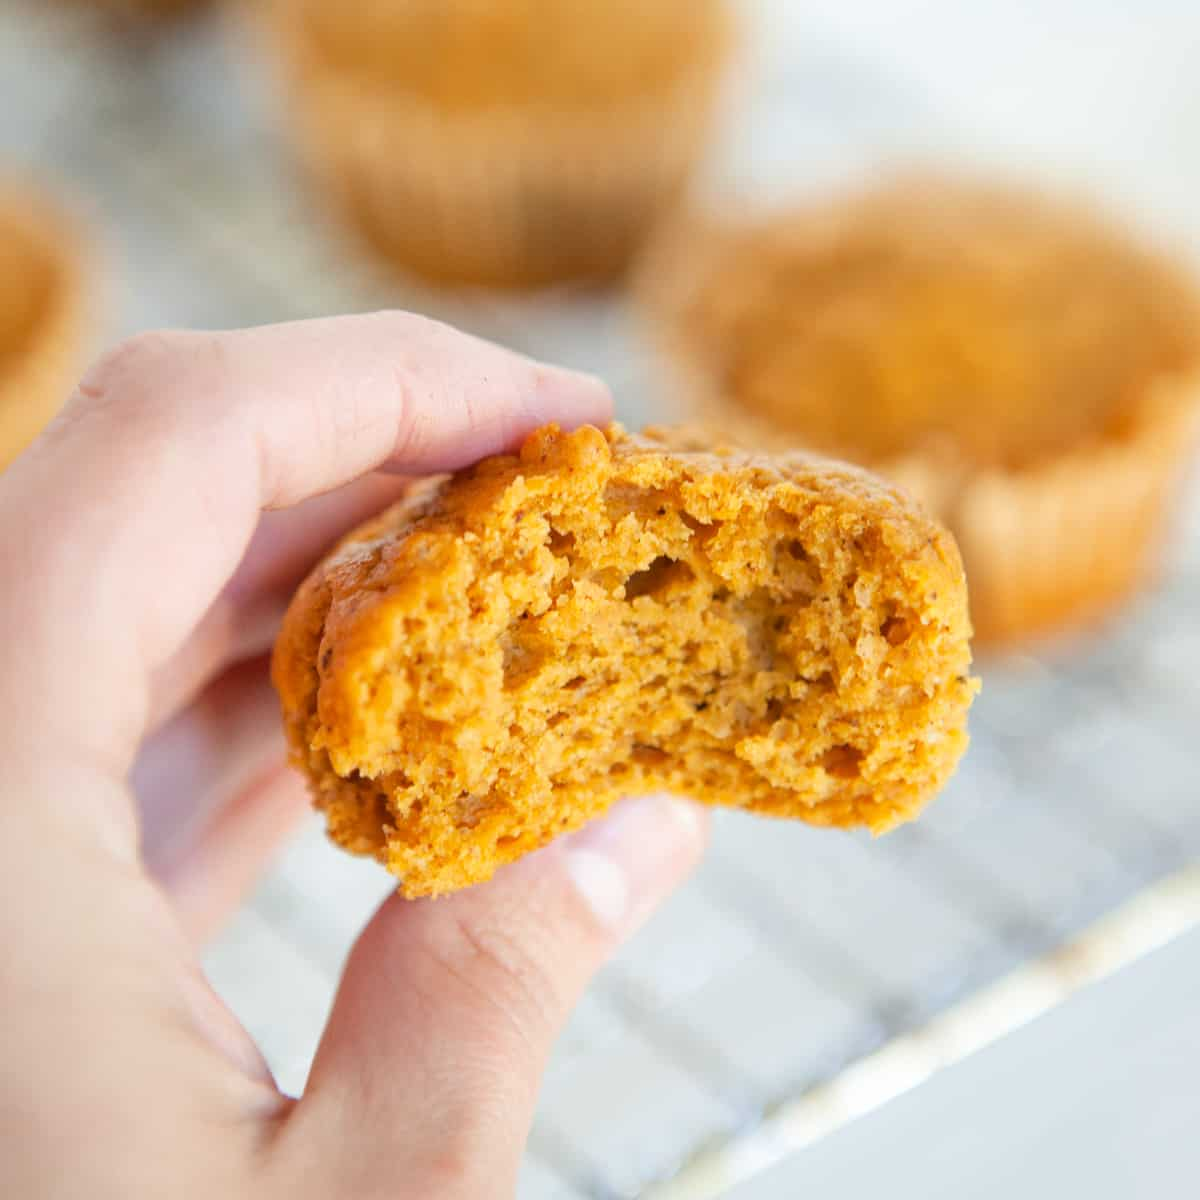 hand holding pumpkin muffin cut in half to show the texture of the inside